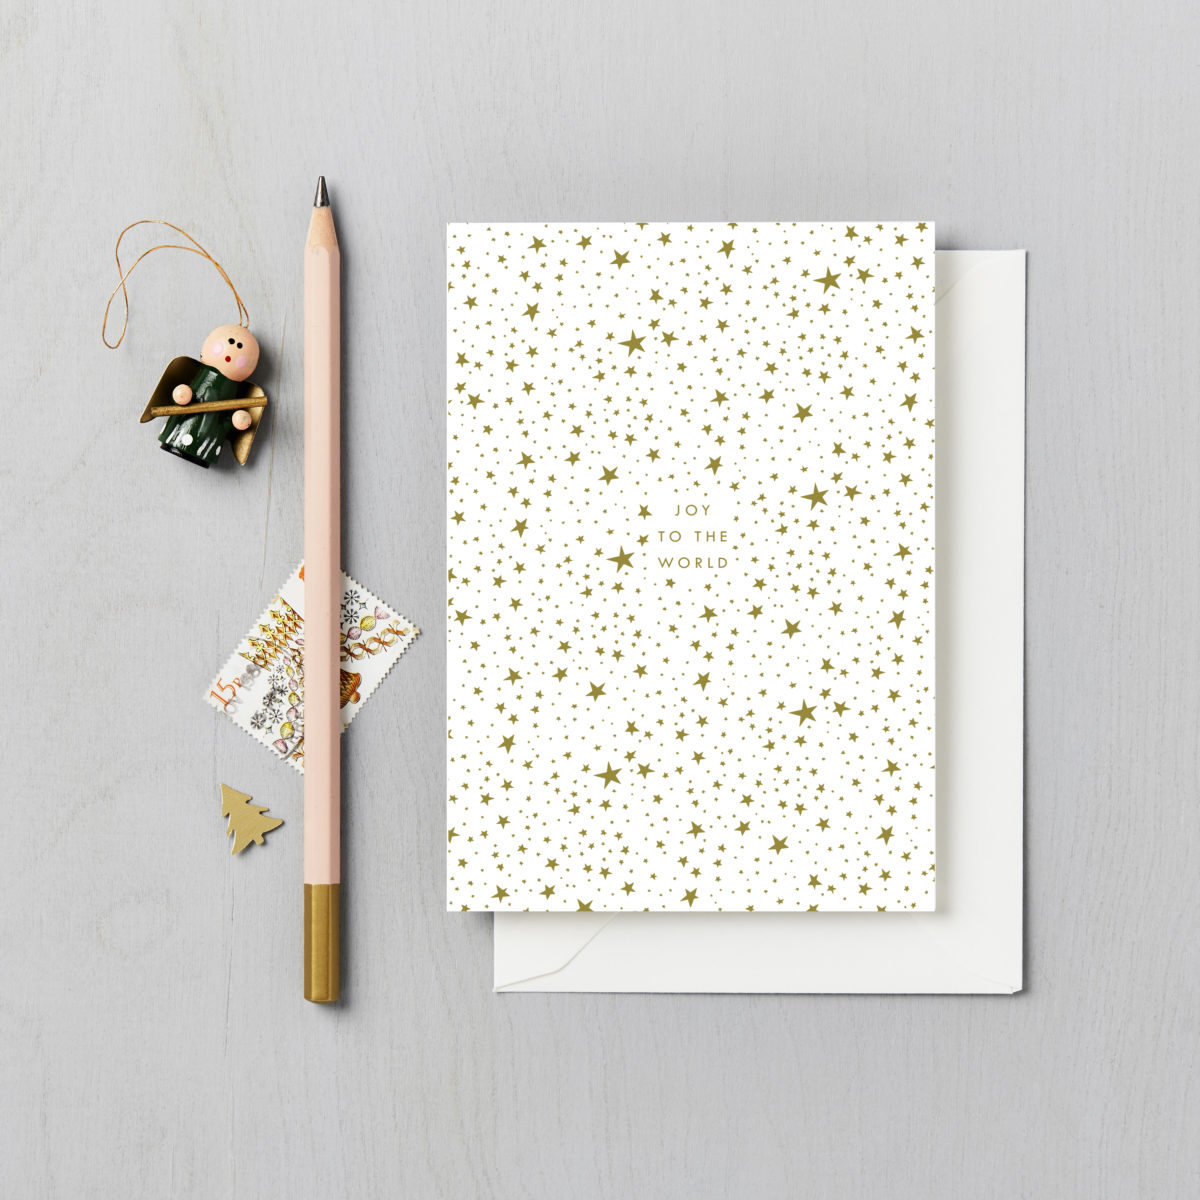 Starry Sky Charity Christmas Card 6 Pack joy to the world